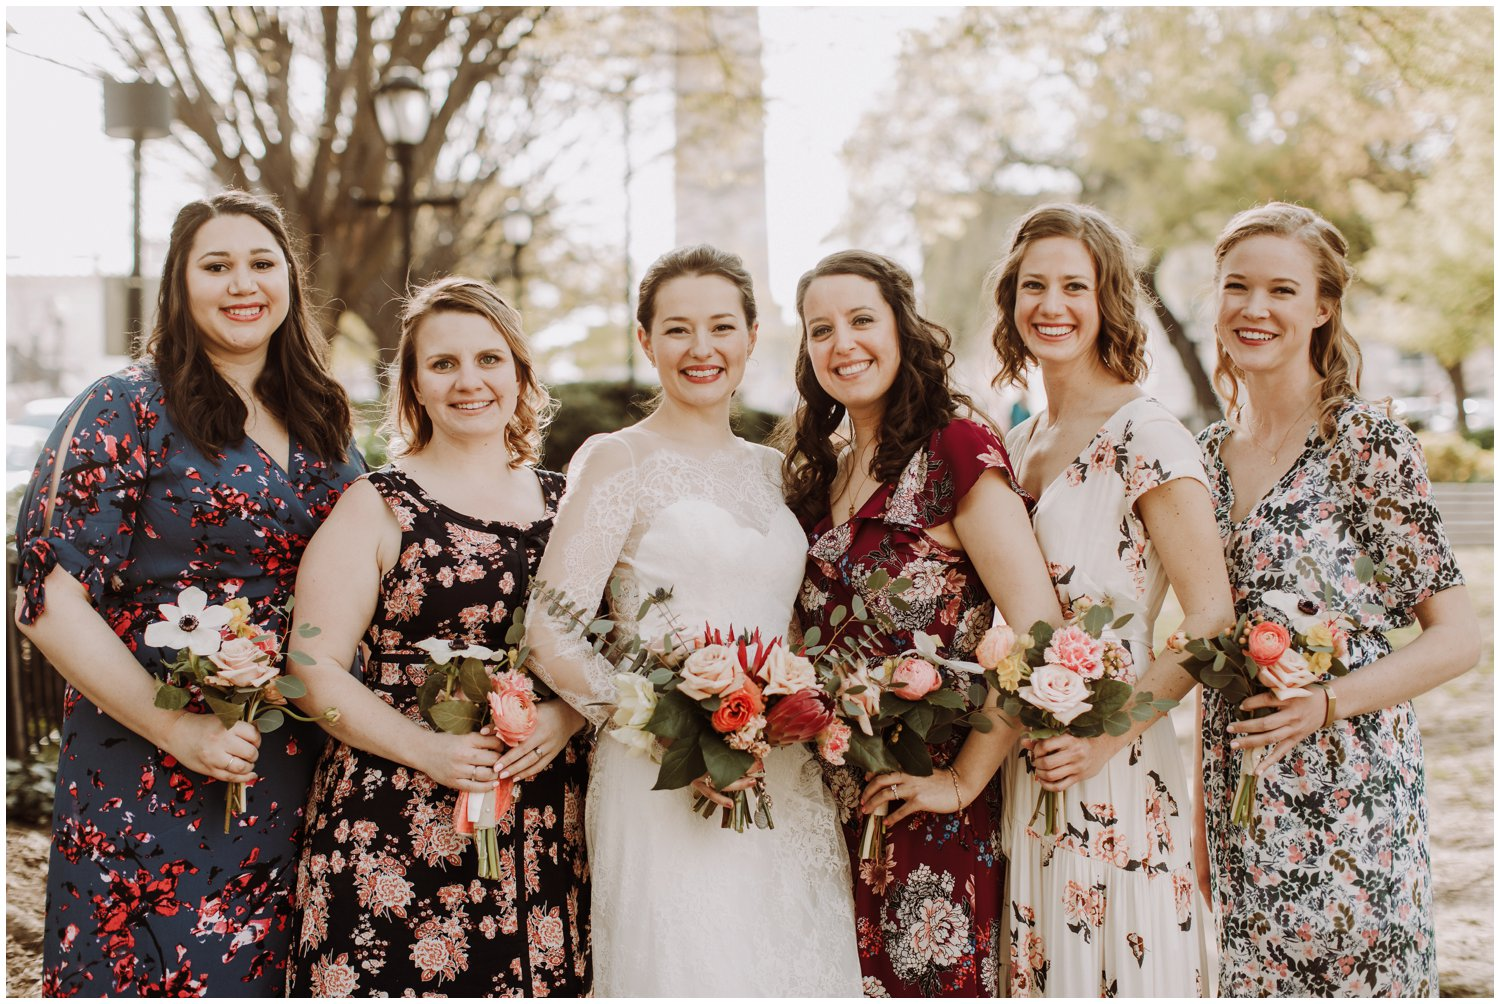 floral bridesmaids dresses spring wedding Baltimore wedding photographer